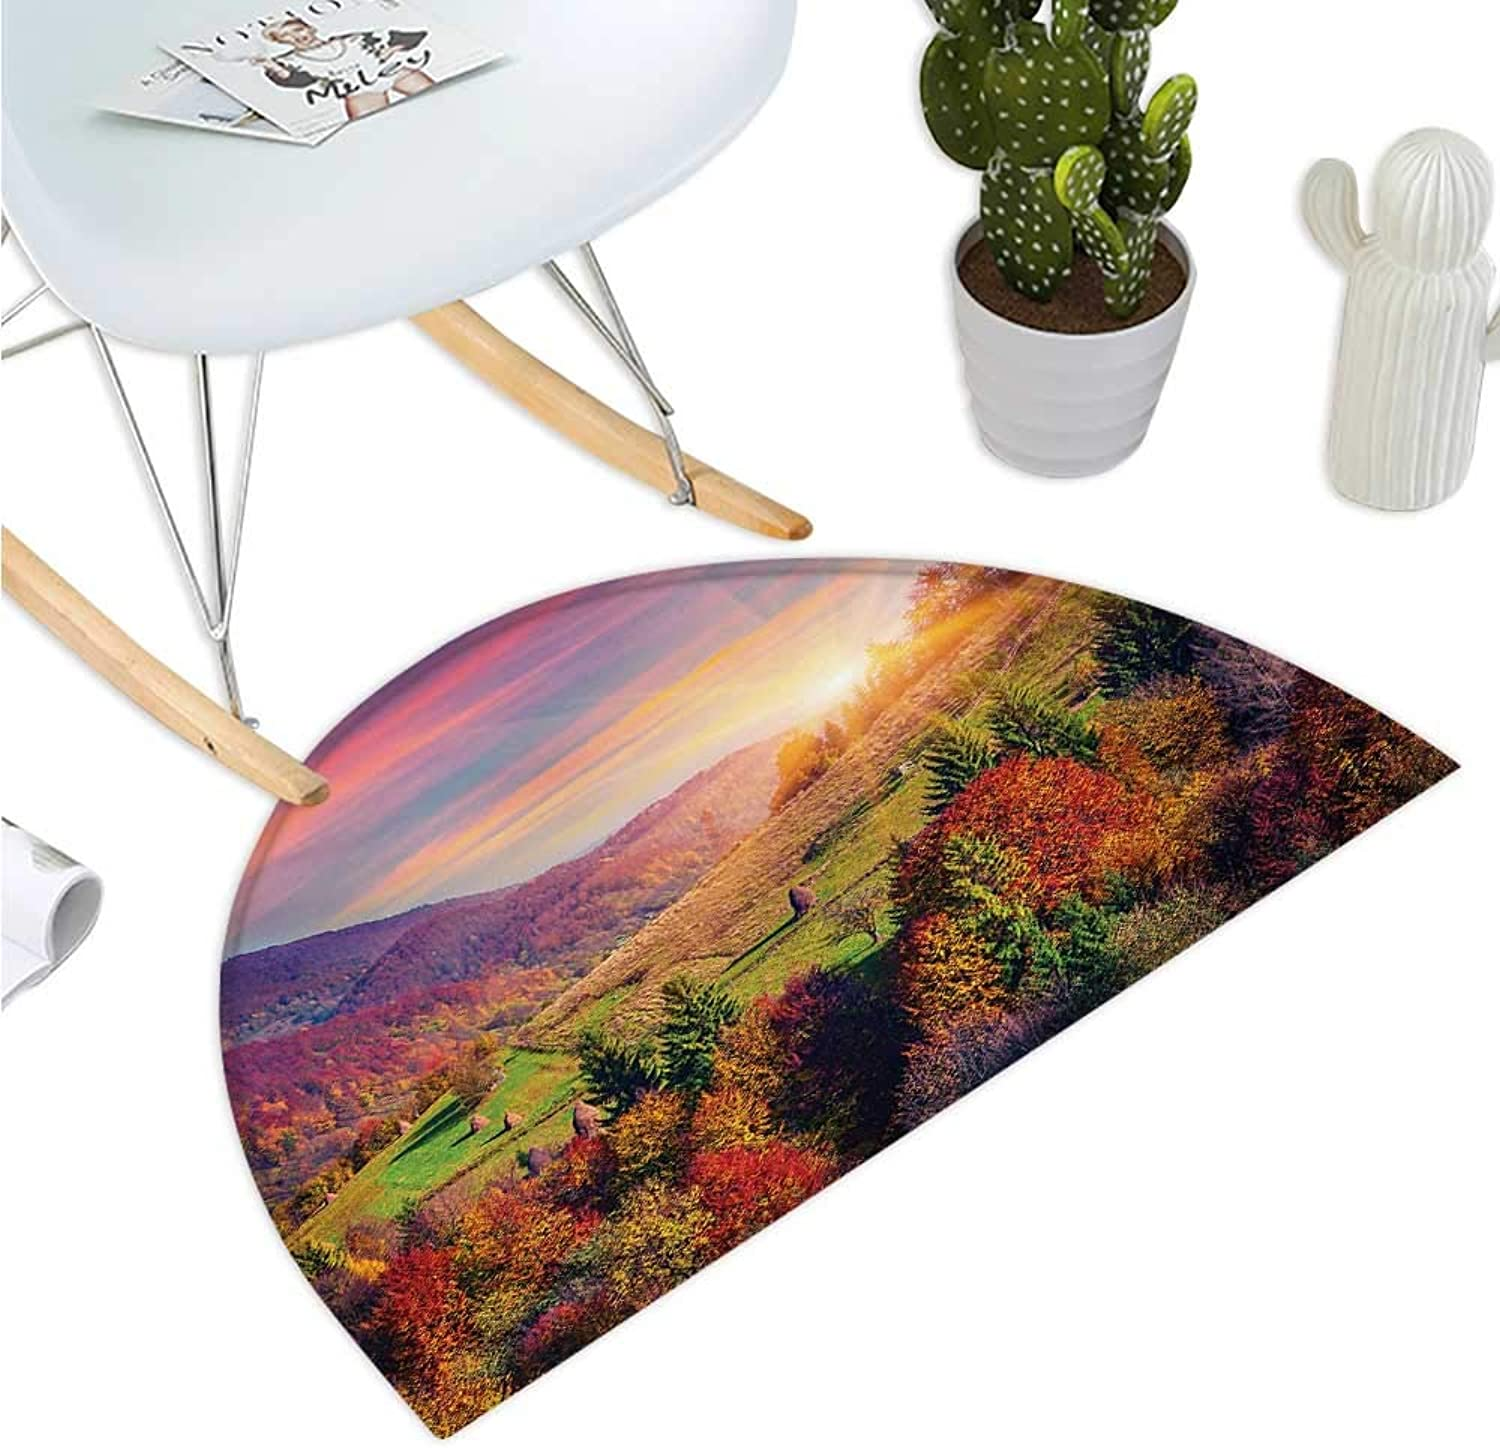 Nature Semicircle Doormat Pastoral Autumn Morning in Mountain Village Fall Tree Surreal Rural Print Halfmoon doormats H 39.3  xD 59  Red Purple Green